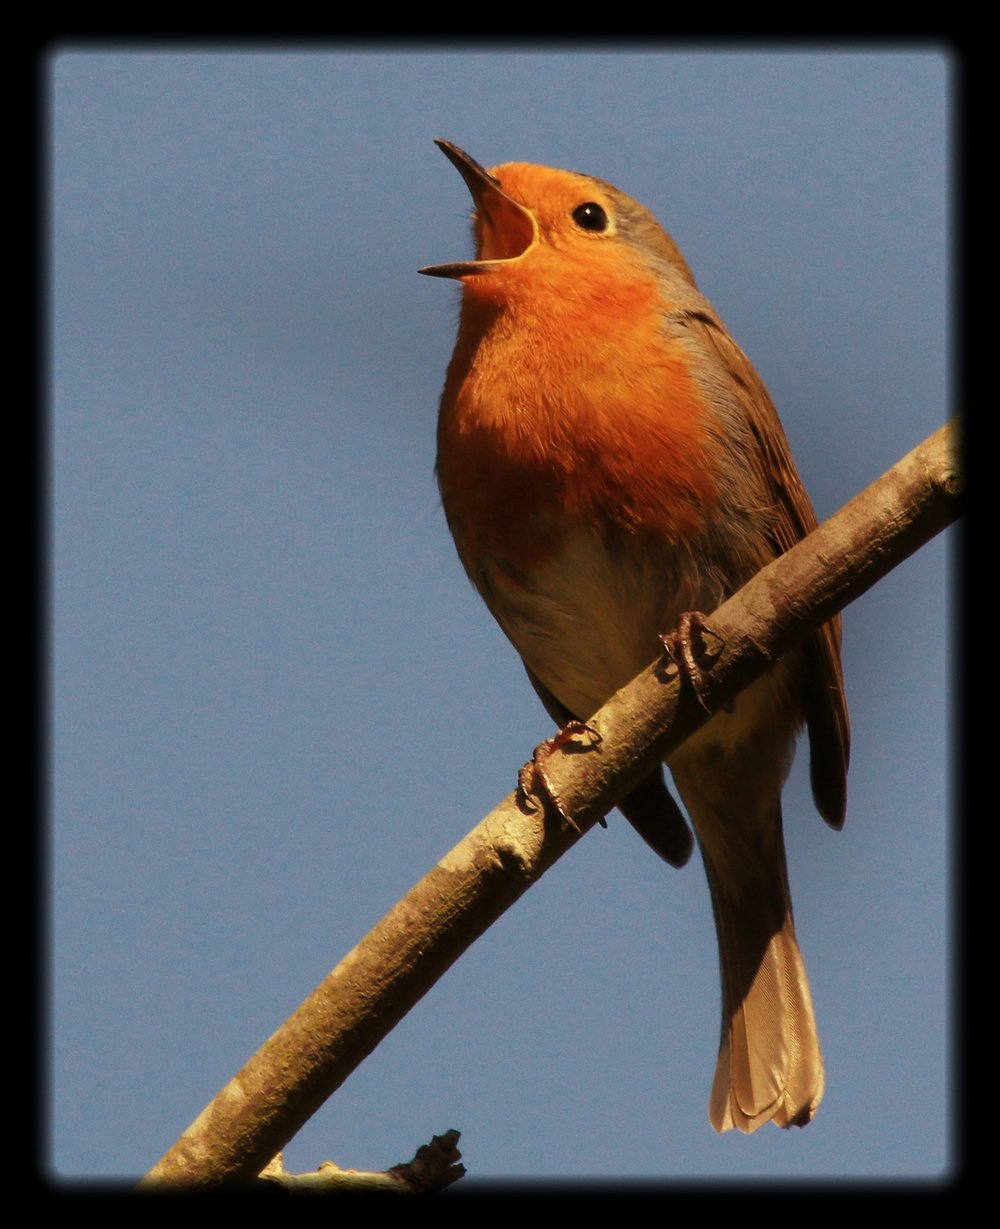 Robin bird_singing.jpg